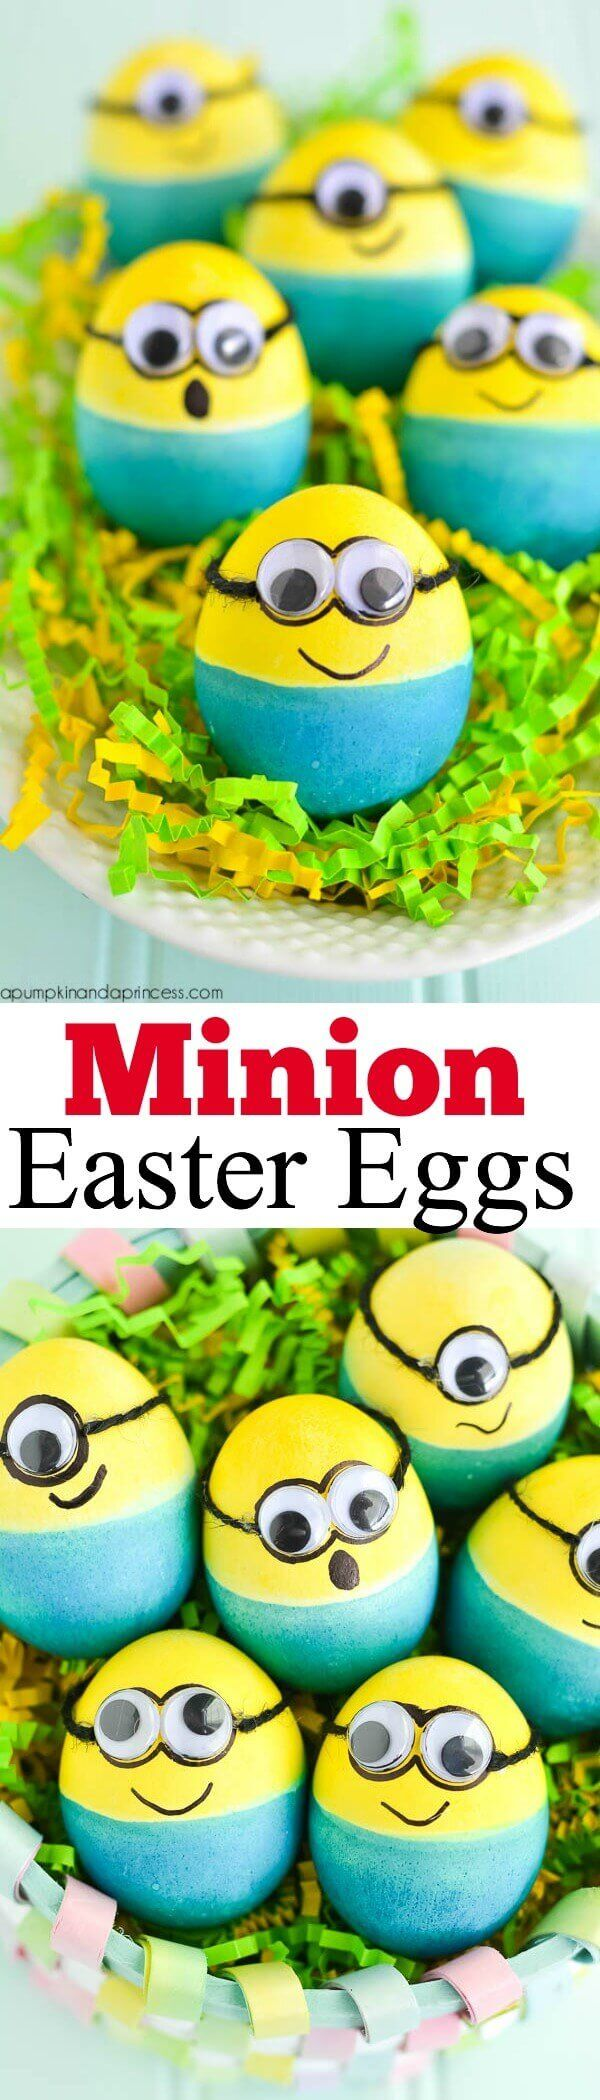 What could be cuter then traditional Easter eggs? Minion Easter eggs!!! Check out this cute ideas for DIY steps!